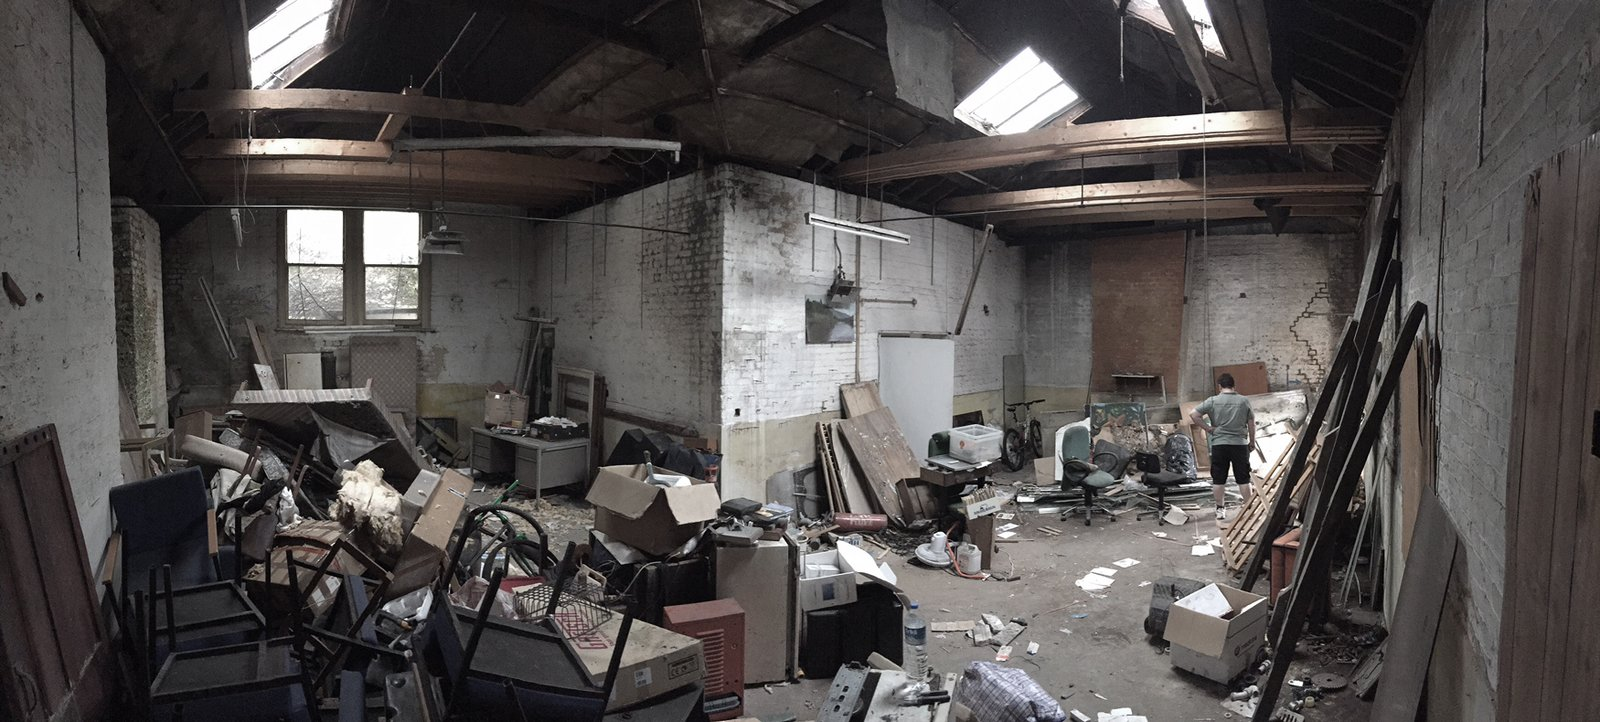 The existing warehouse was left abandoned and run down, in need of a new owner, constructive repair, and a new life.